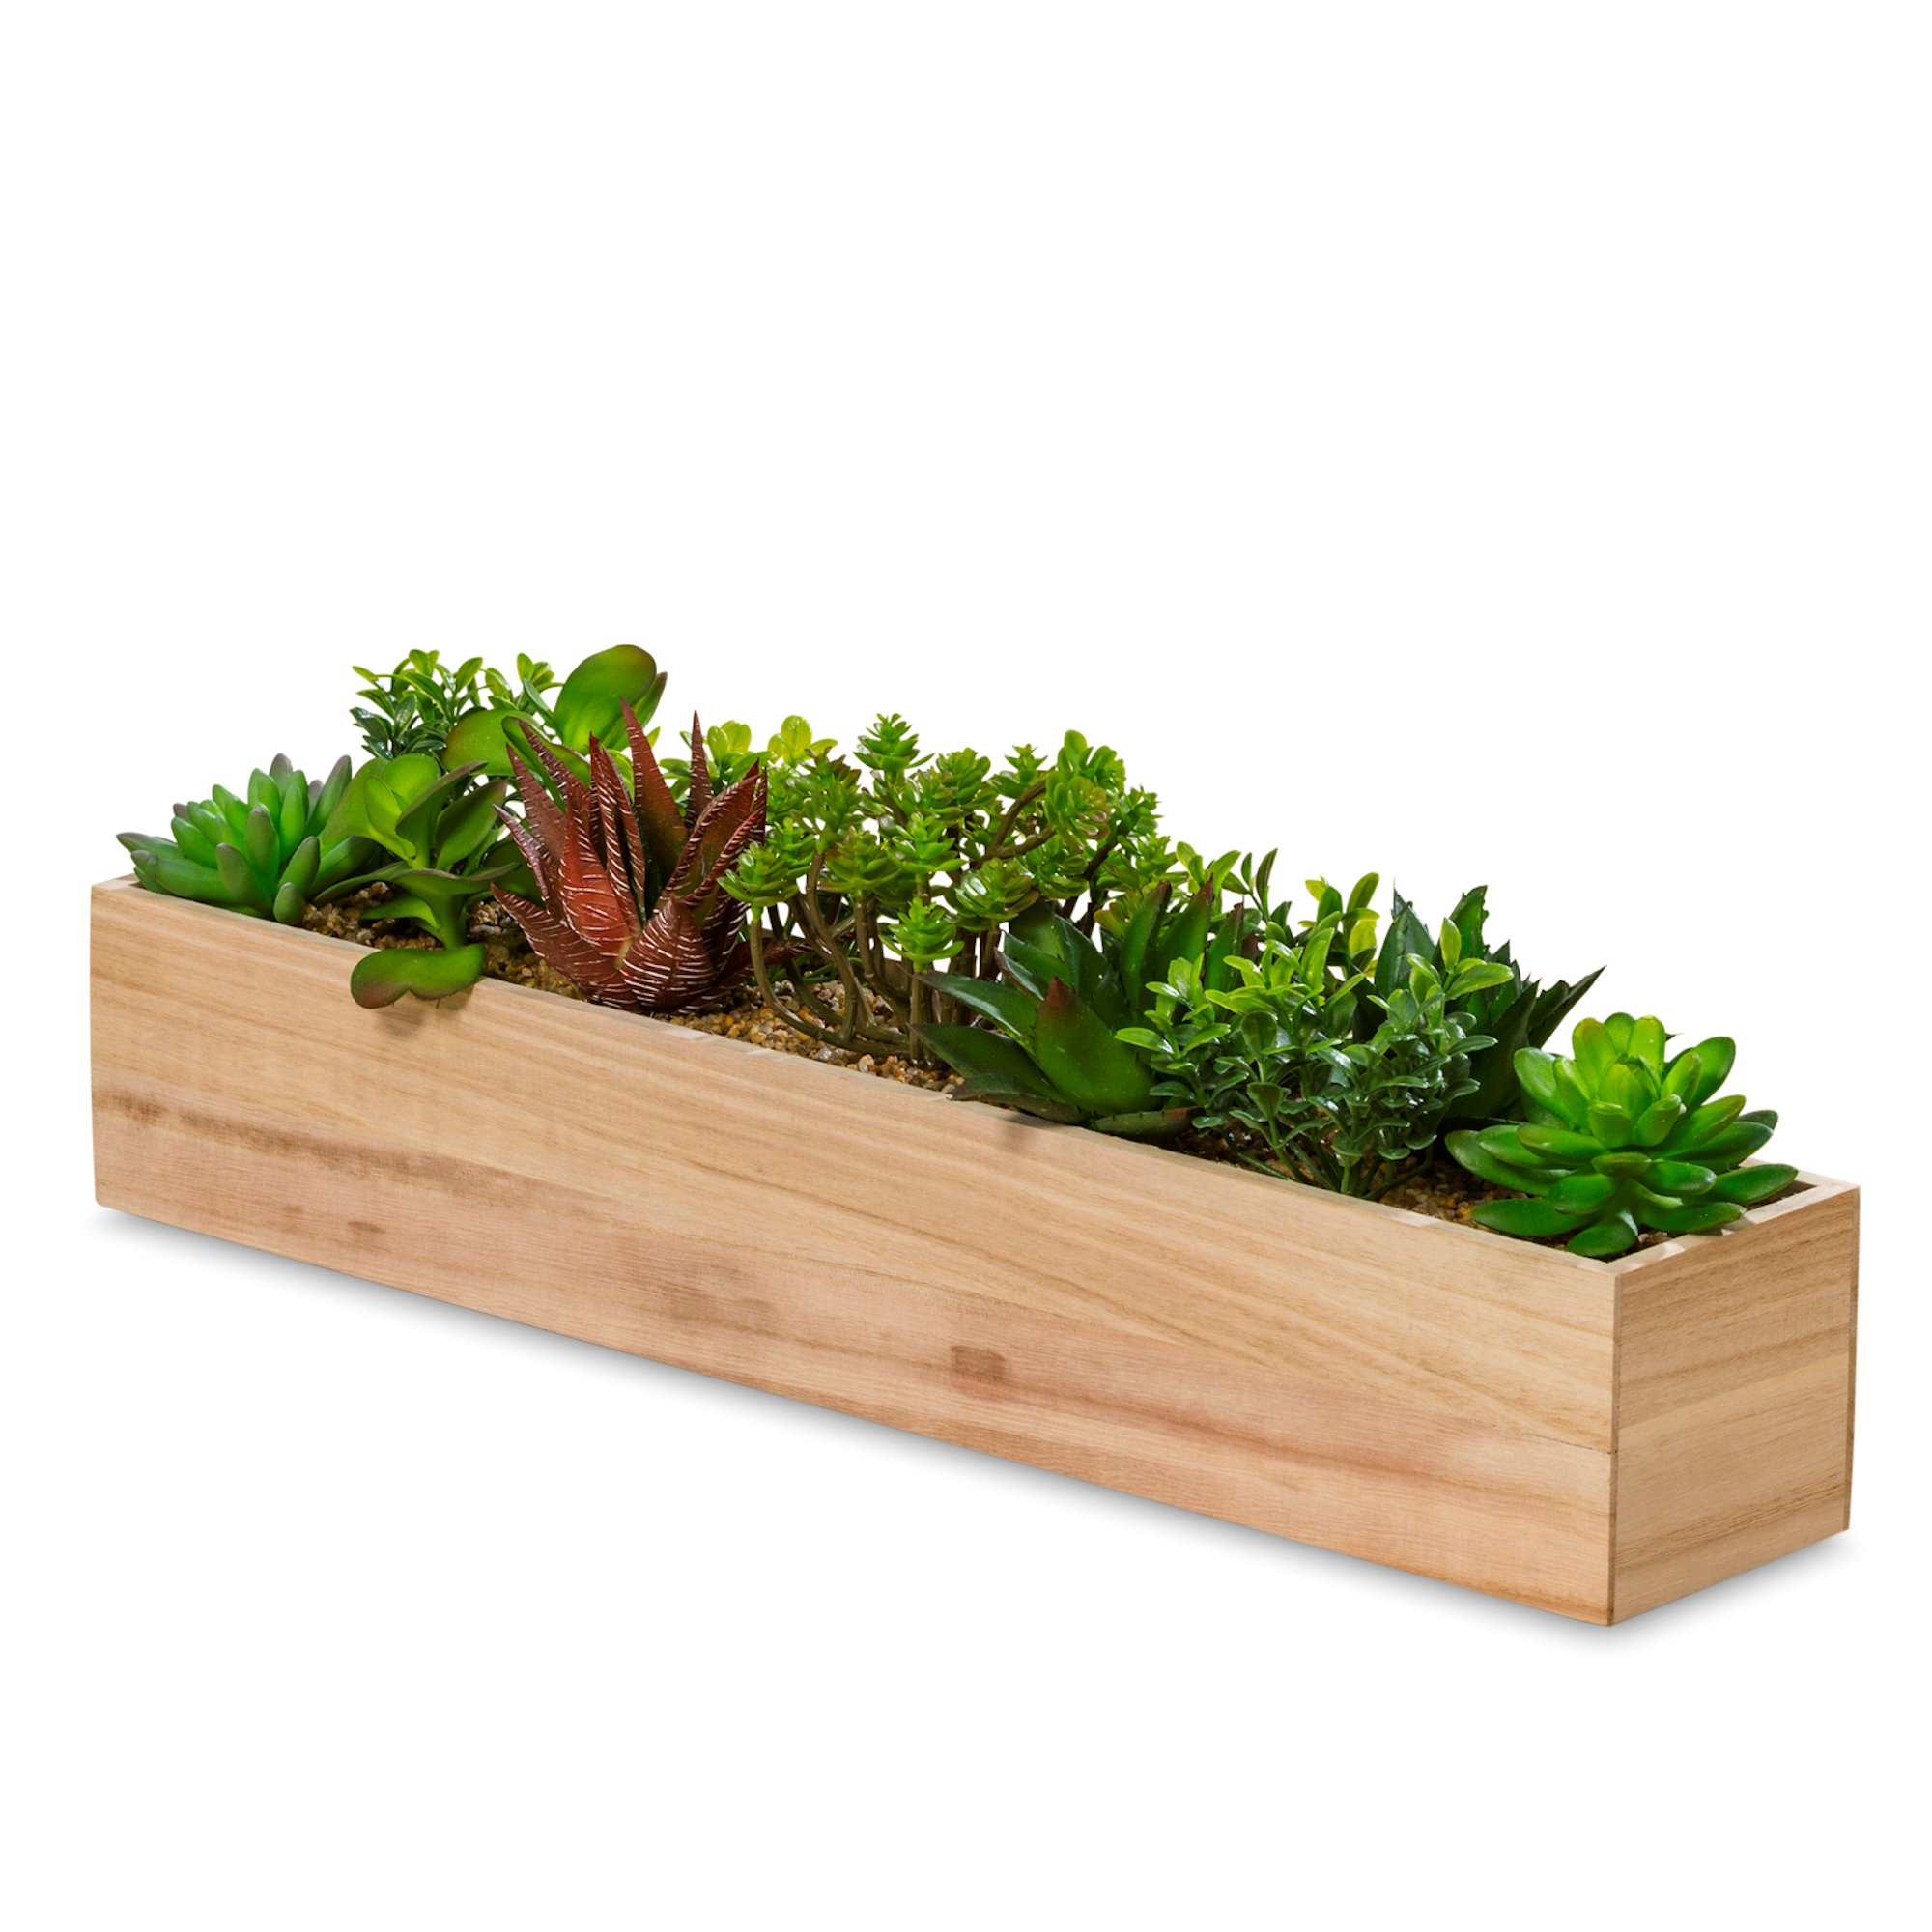 Naturally Modern Faux Succulent Table Top Box, Assorted Handmade Plants, Rectangular Wood Terrarium Arrangement, 20 1/2 Inches Long, Centerpiece or Window, Pebble Liner, Plastic, By WHW